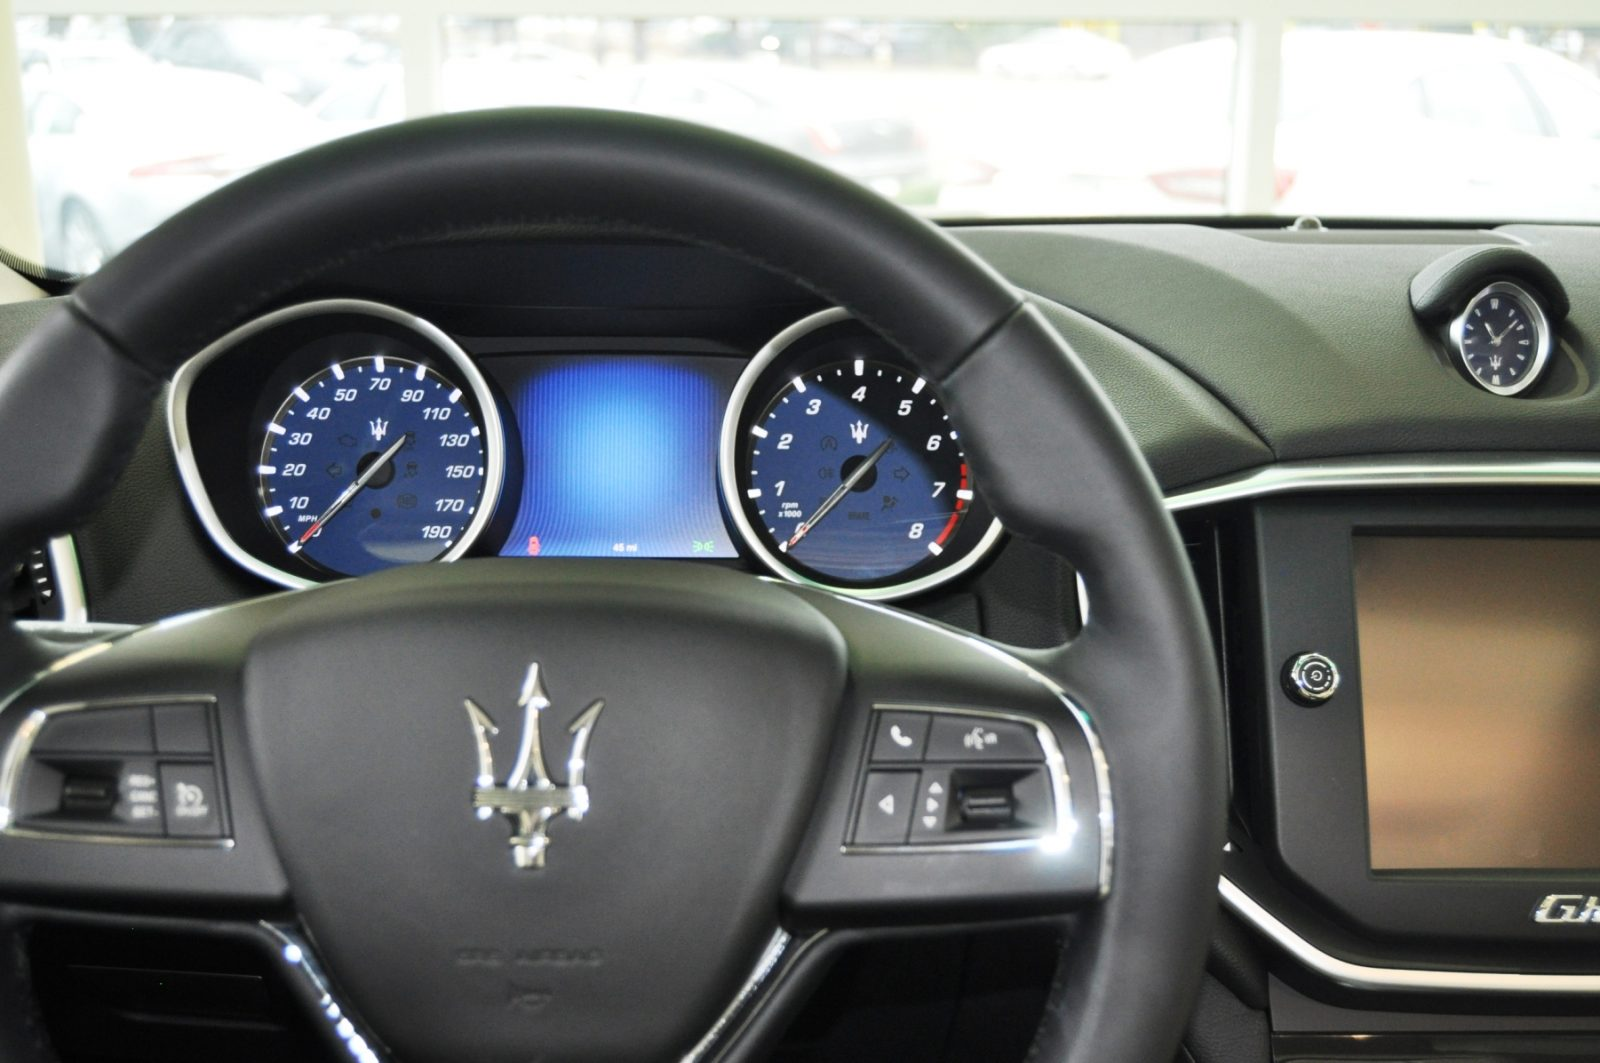 2014 Maserati Ghibli Q4 -- Interior Feels Luxe and High-Quality, But Back Seat A Bit Tight 12